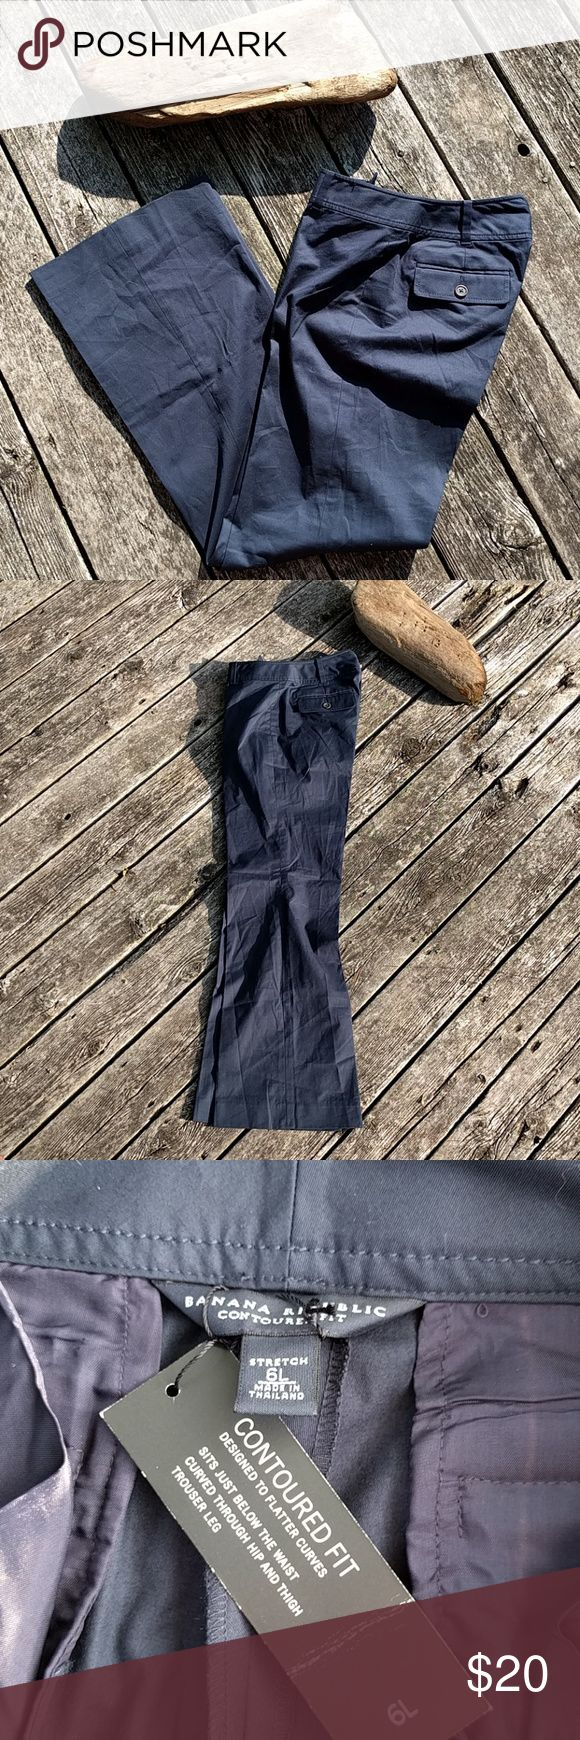 """Banana Republic//NWT Navy Workwear Trousers NWT navy blue wide-legged workwear trousers by Banana Republic. Size 6L. 93% cotton/7% Spandex.  From tag: """"Designed to Flatter Curves - Sits Just Below the Waist - Curved Through Hip & Thigh - Trouser Leg"""" Banana Republic Pants Trousers"""